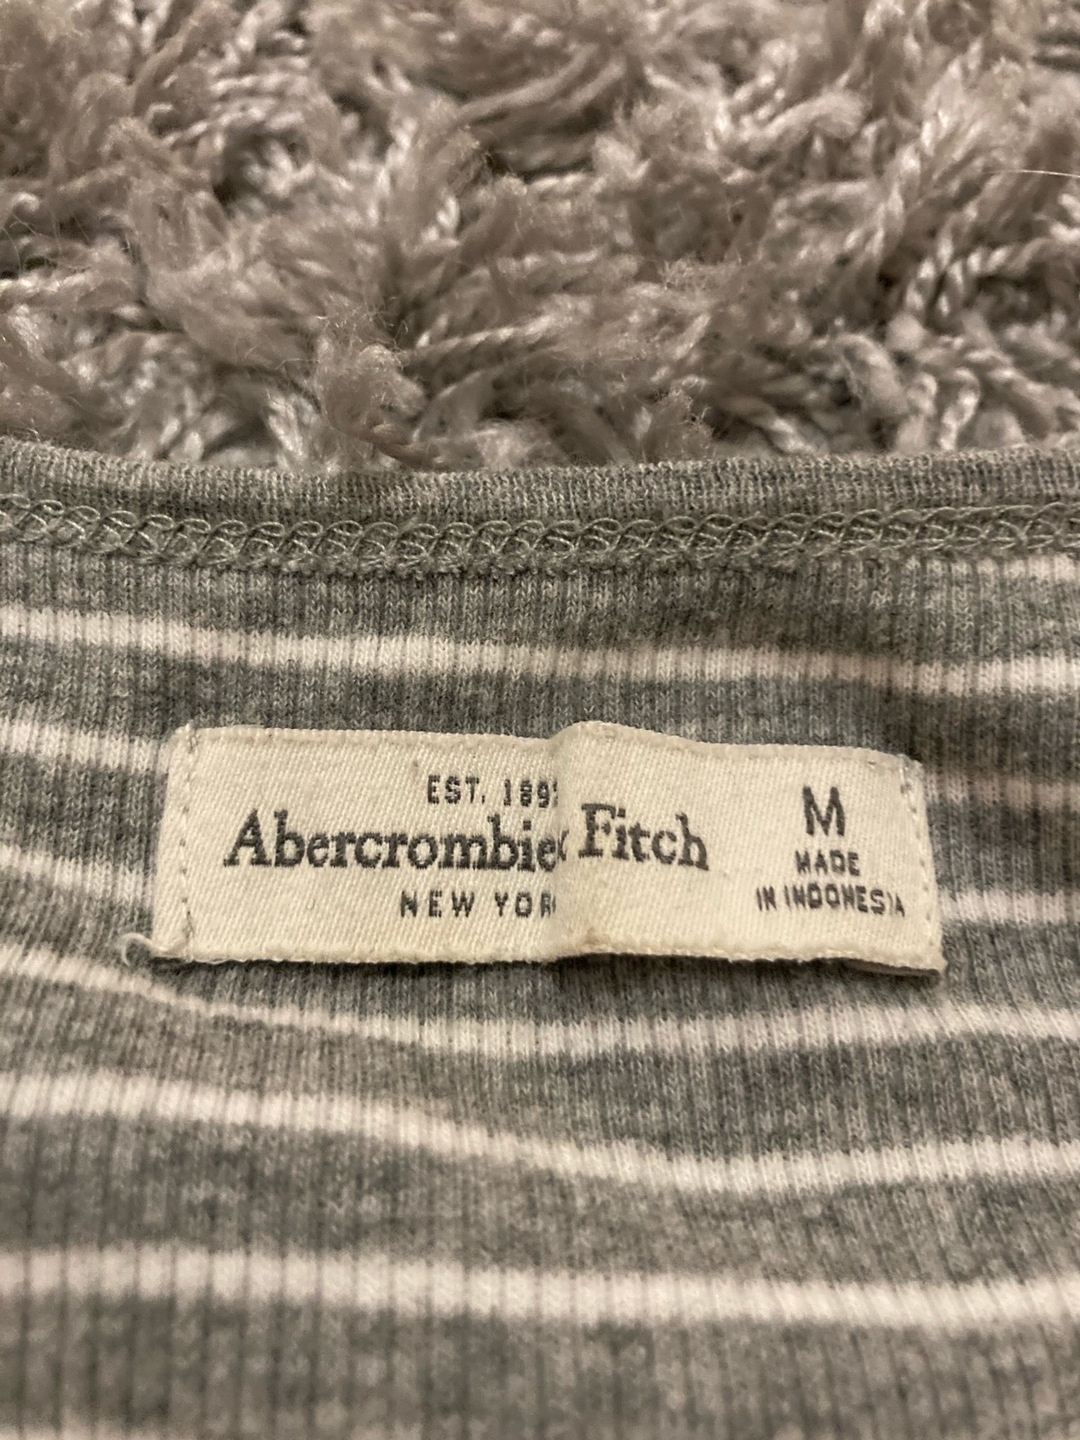 Women's blouses & shirts - ABERCROMBIE & FITCH photo 4